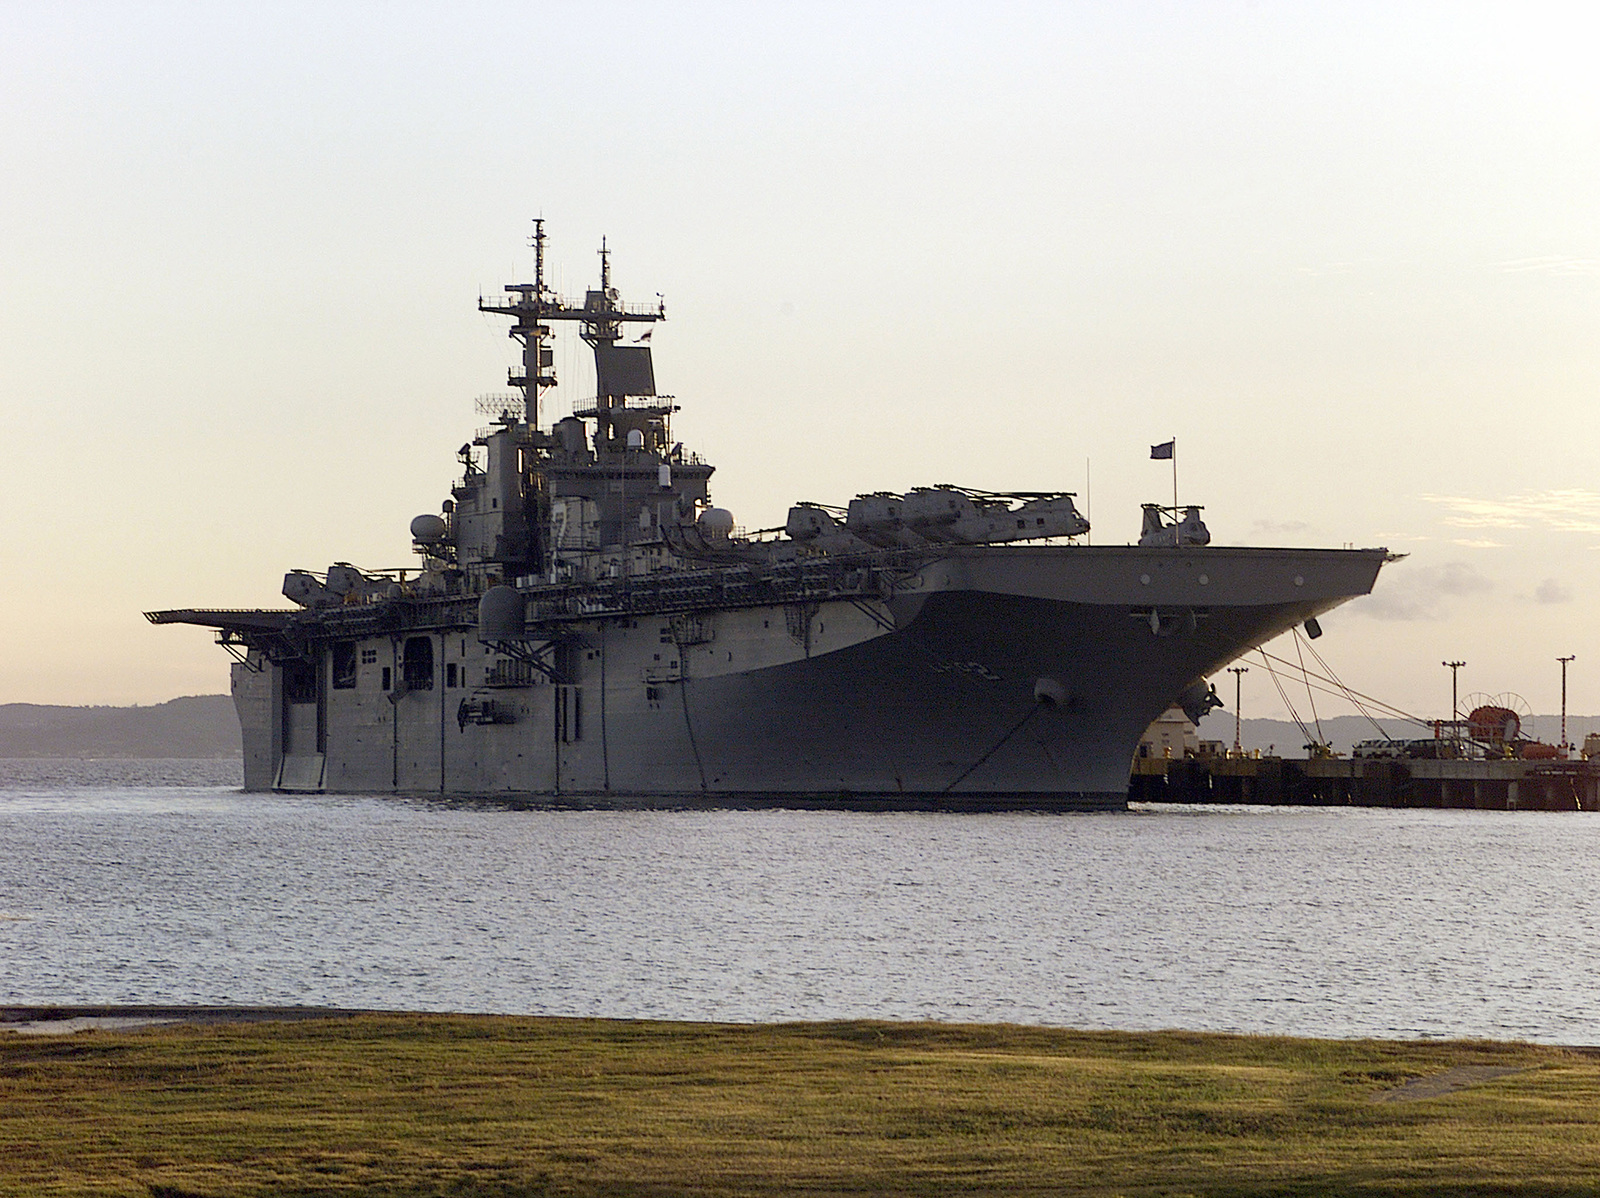 The USS Essex (LHD 2) sits docked at the White Beach port in Okinawa, Japan. While its crew gets some well-deserved liberty time after being on board for two weeks for the Amphibious Ready Group Exercise (ARGEX) and Special Operations Capable Exercise (SOCEX). The US Marines from the 31st Marine Expeditionary Unit spent two months participating in various training operations on and off the coast of Okinawa, Japan, Sasebo, Japan, Pohang, Korea, and Hong Kong, China